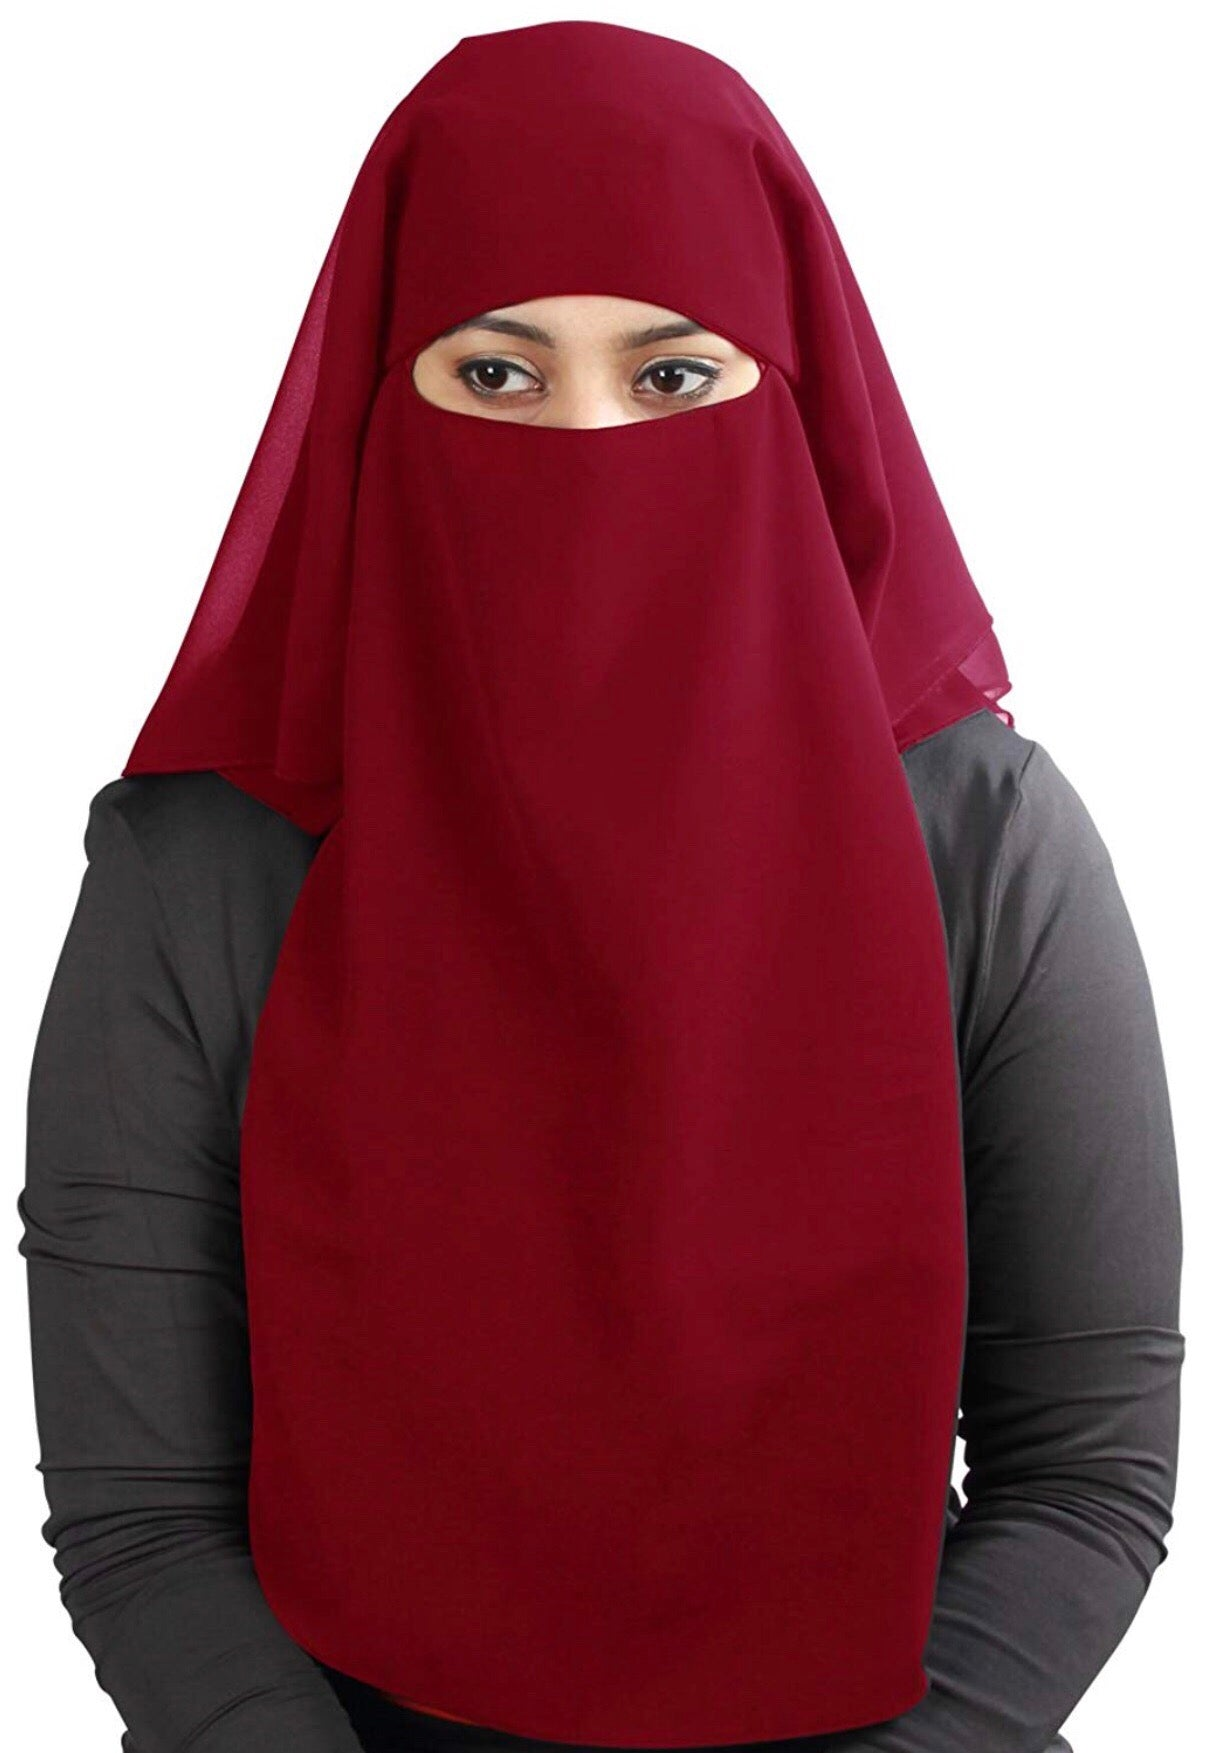 Burgundy 3 Layer Niqab